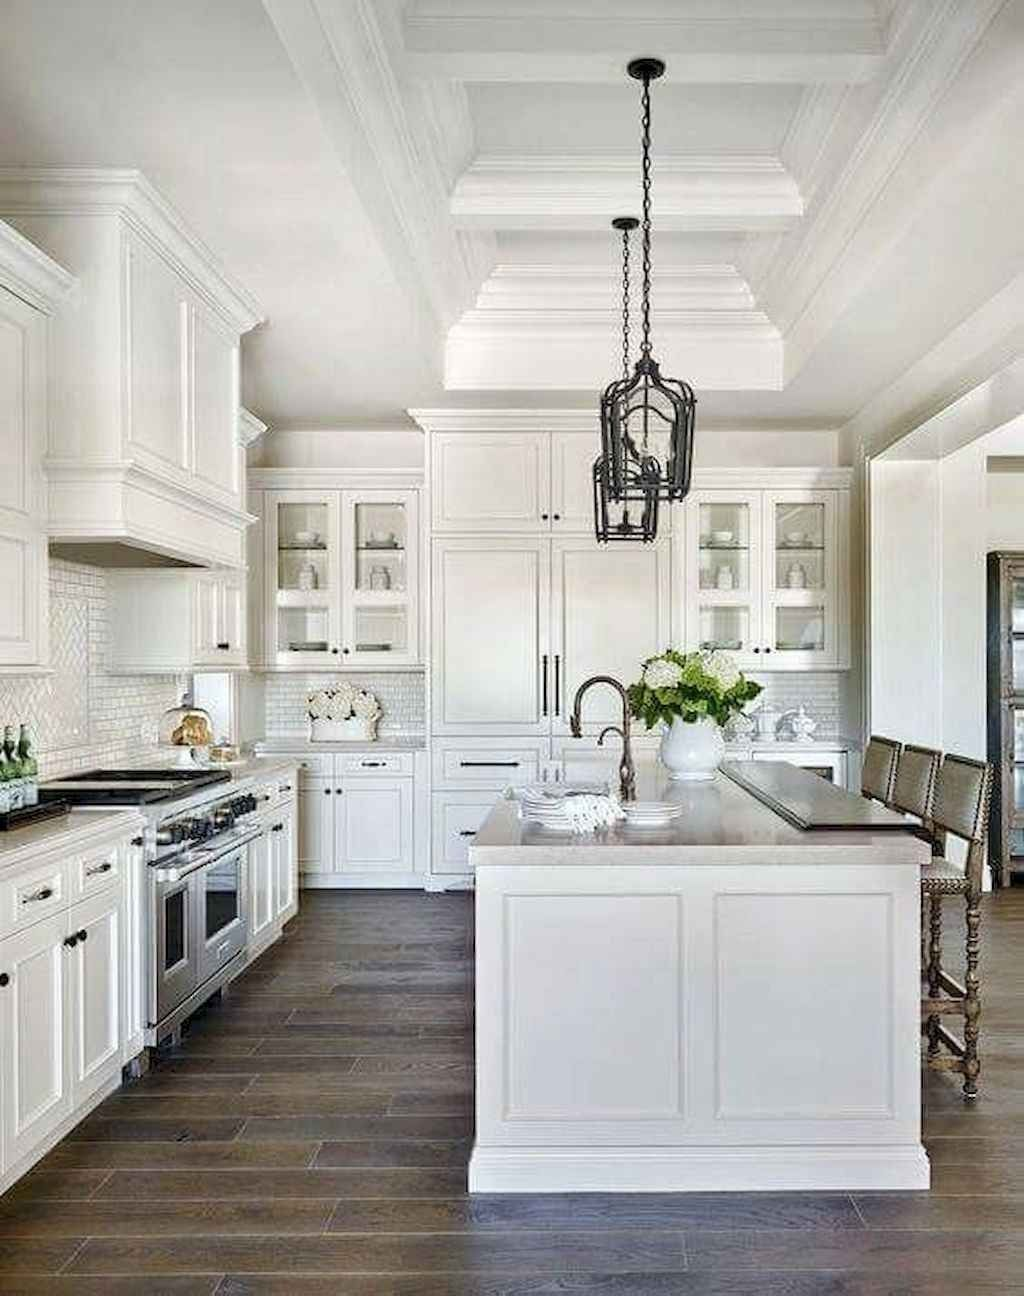 45 Modern Farmhouse Kitchen Cabinets Decor Ideas And Makeover White Kitchen Design Cottage Kitchen Design Elegant Kitchens